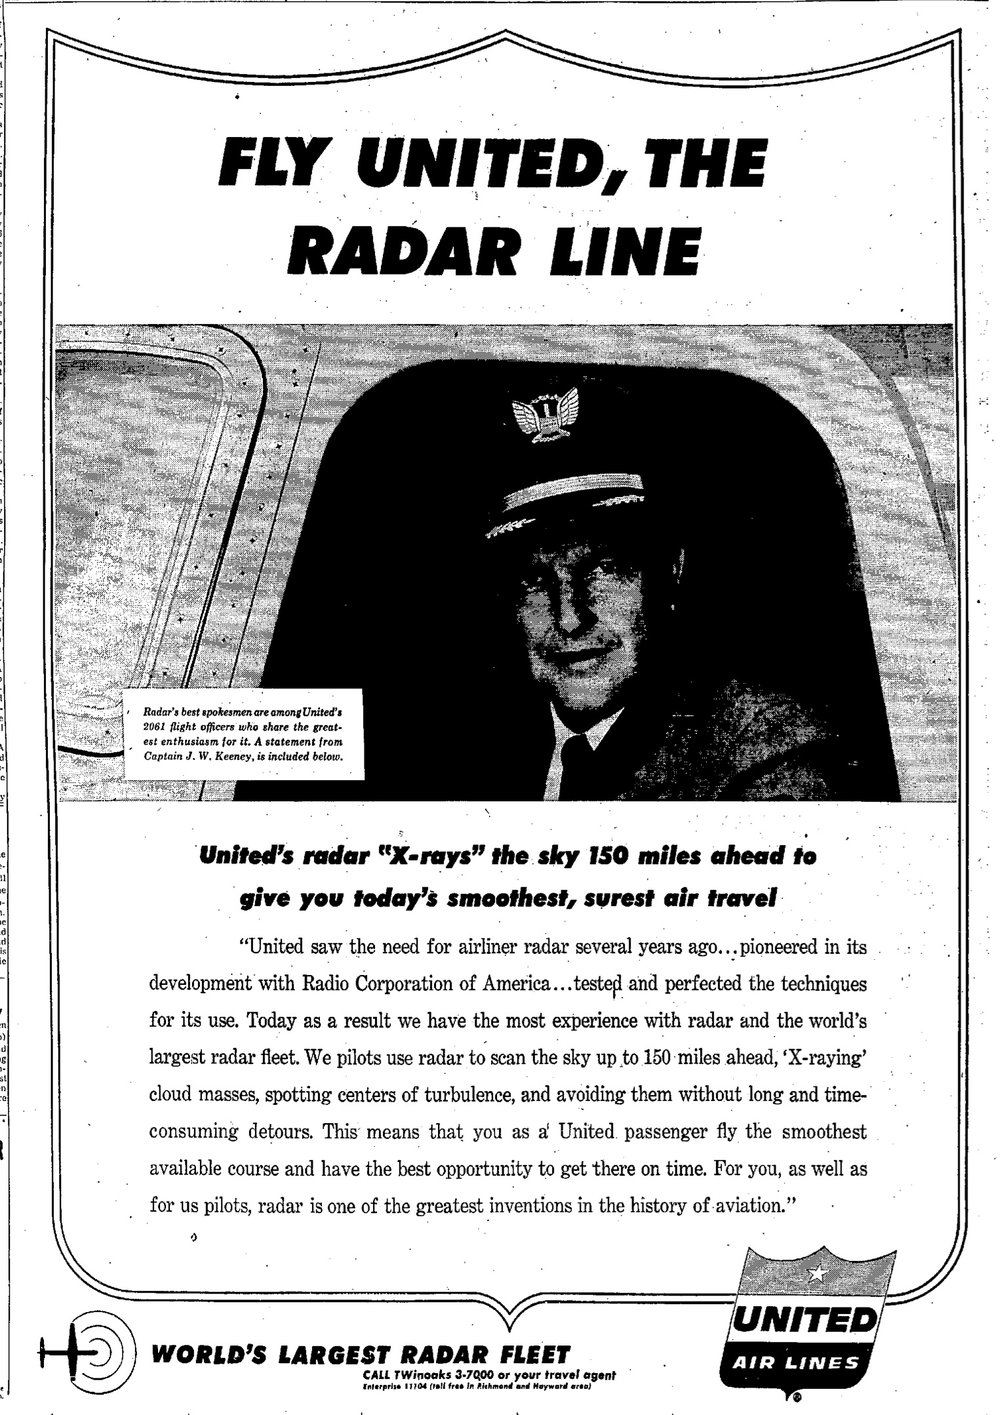 Mr. Keeney featured in an ad in the Oakland Tribune, July 16, 1957.